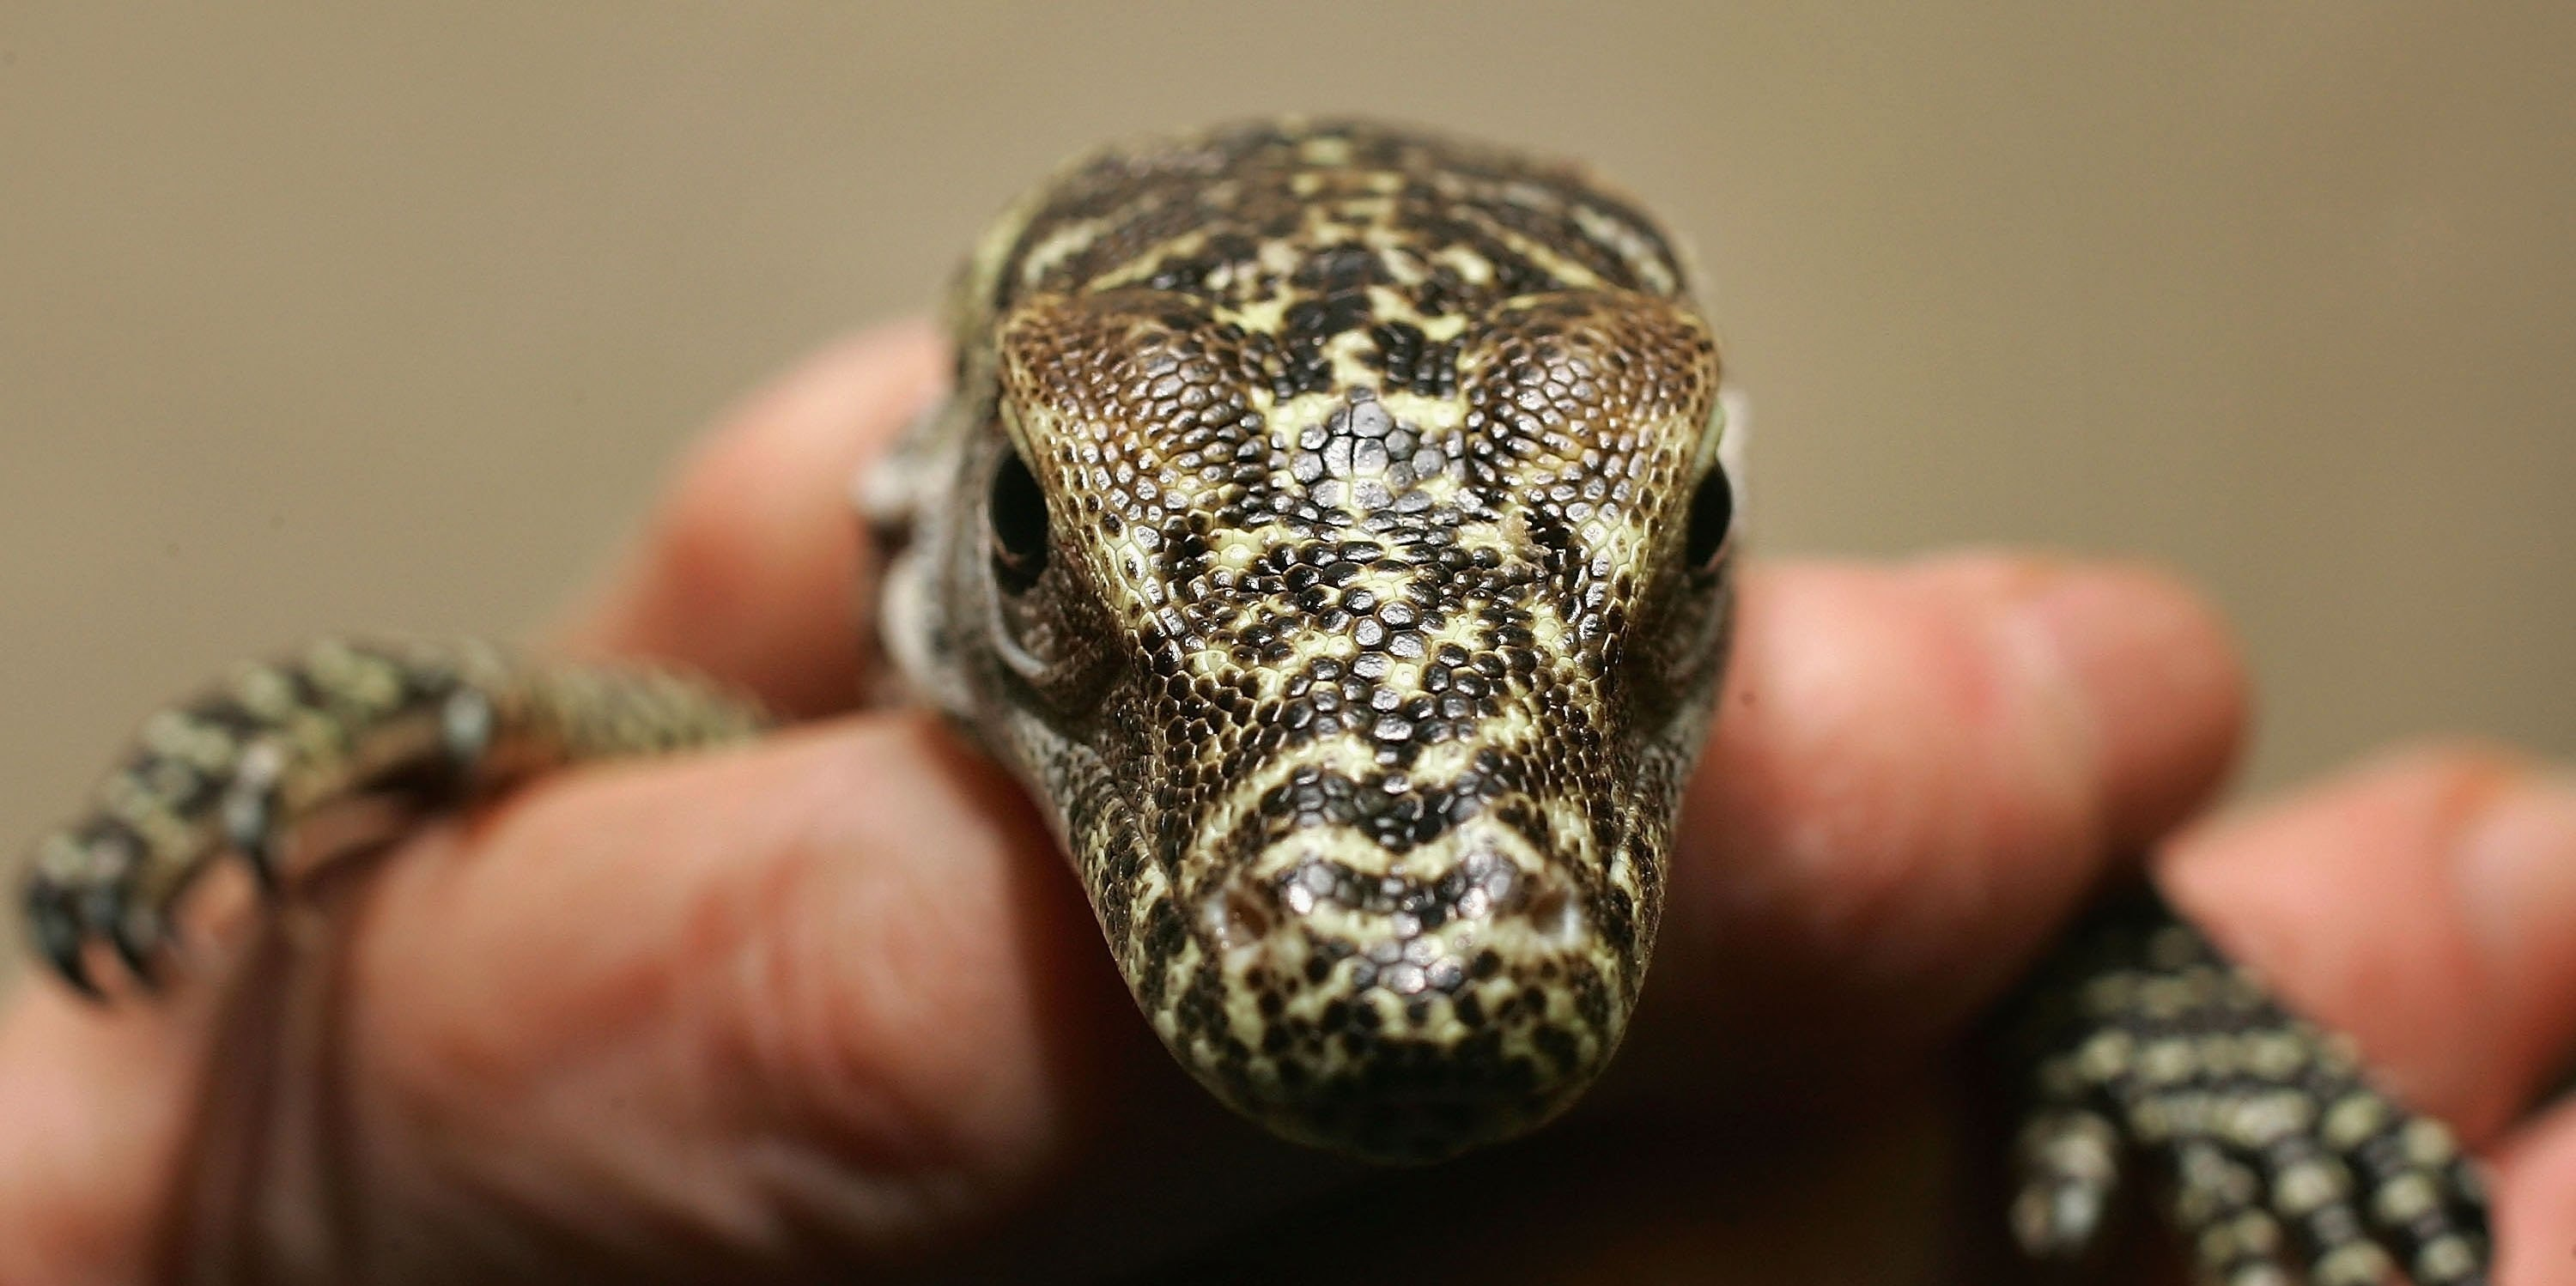 A baby Komodo dragon. These lizards sometimes eat their young. On the bright side, they might soon save human lives.